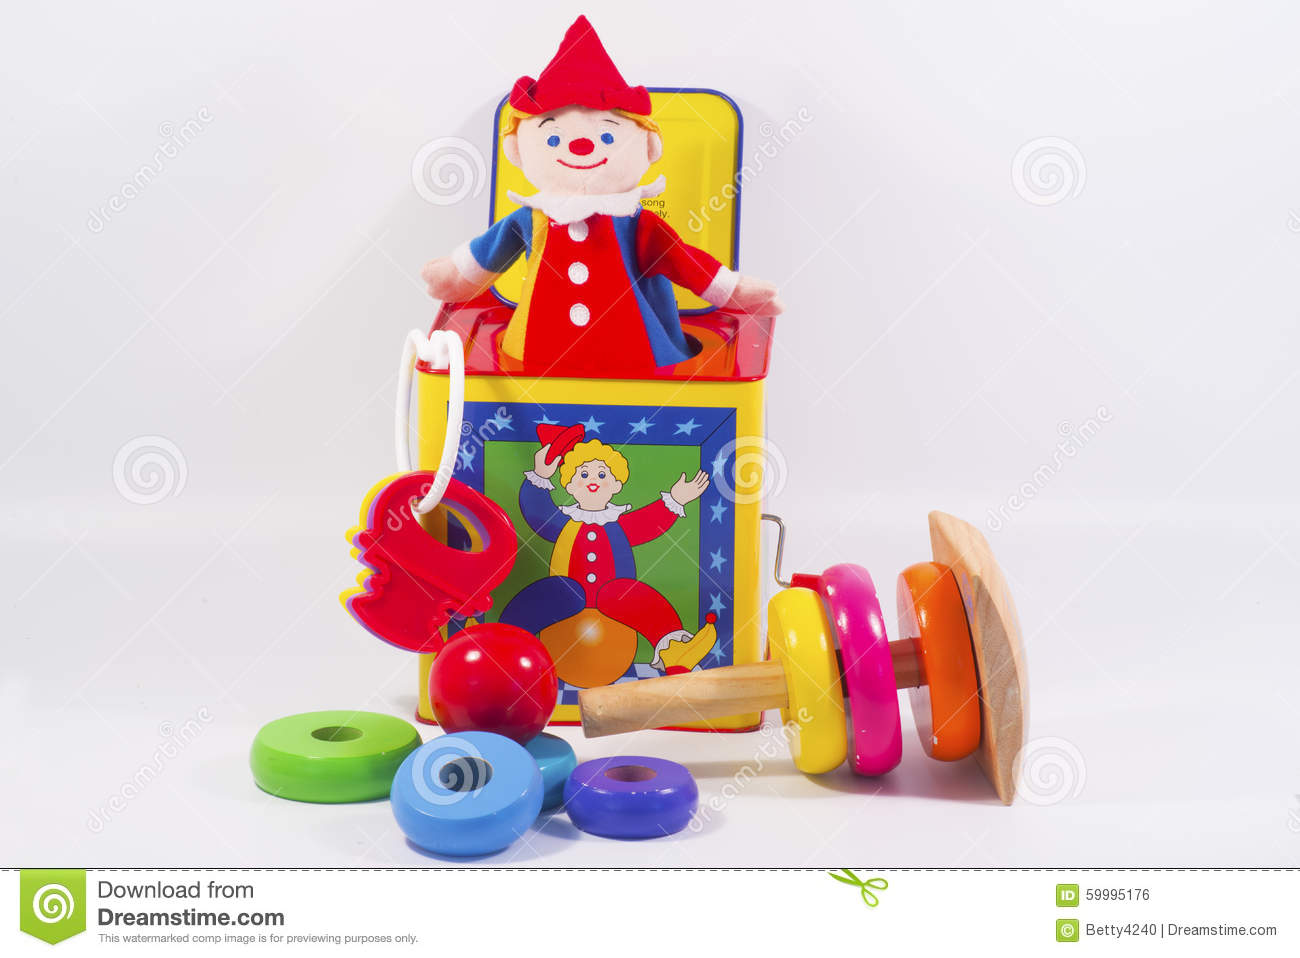 Toys For Groups : Group of colorful toys with white background stock photo